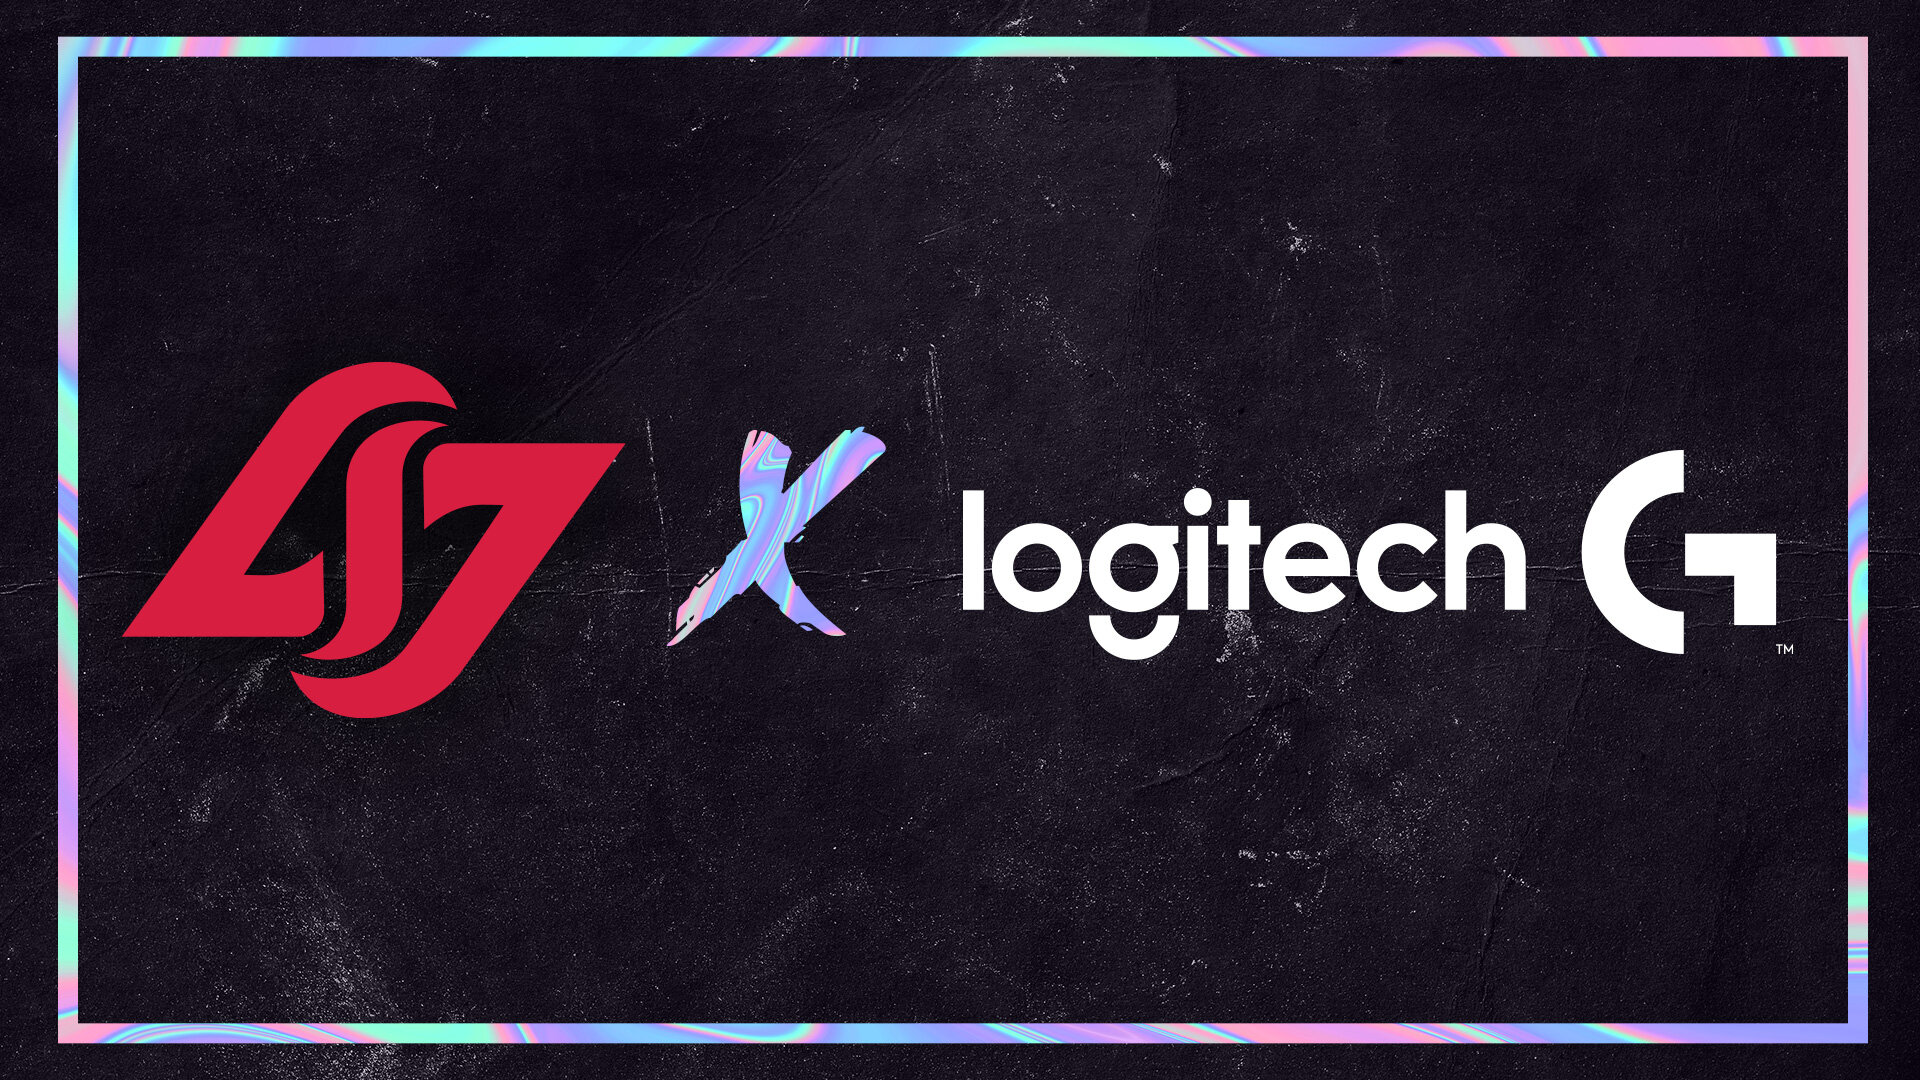 CLG Red names Logitech G as peripherals partner